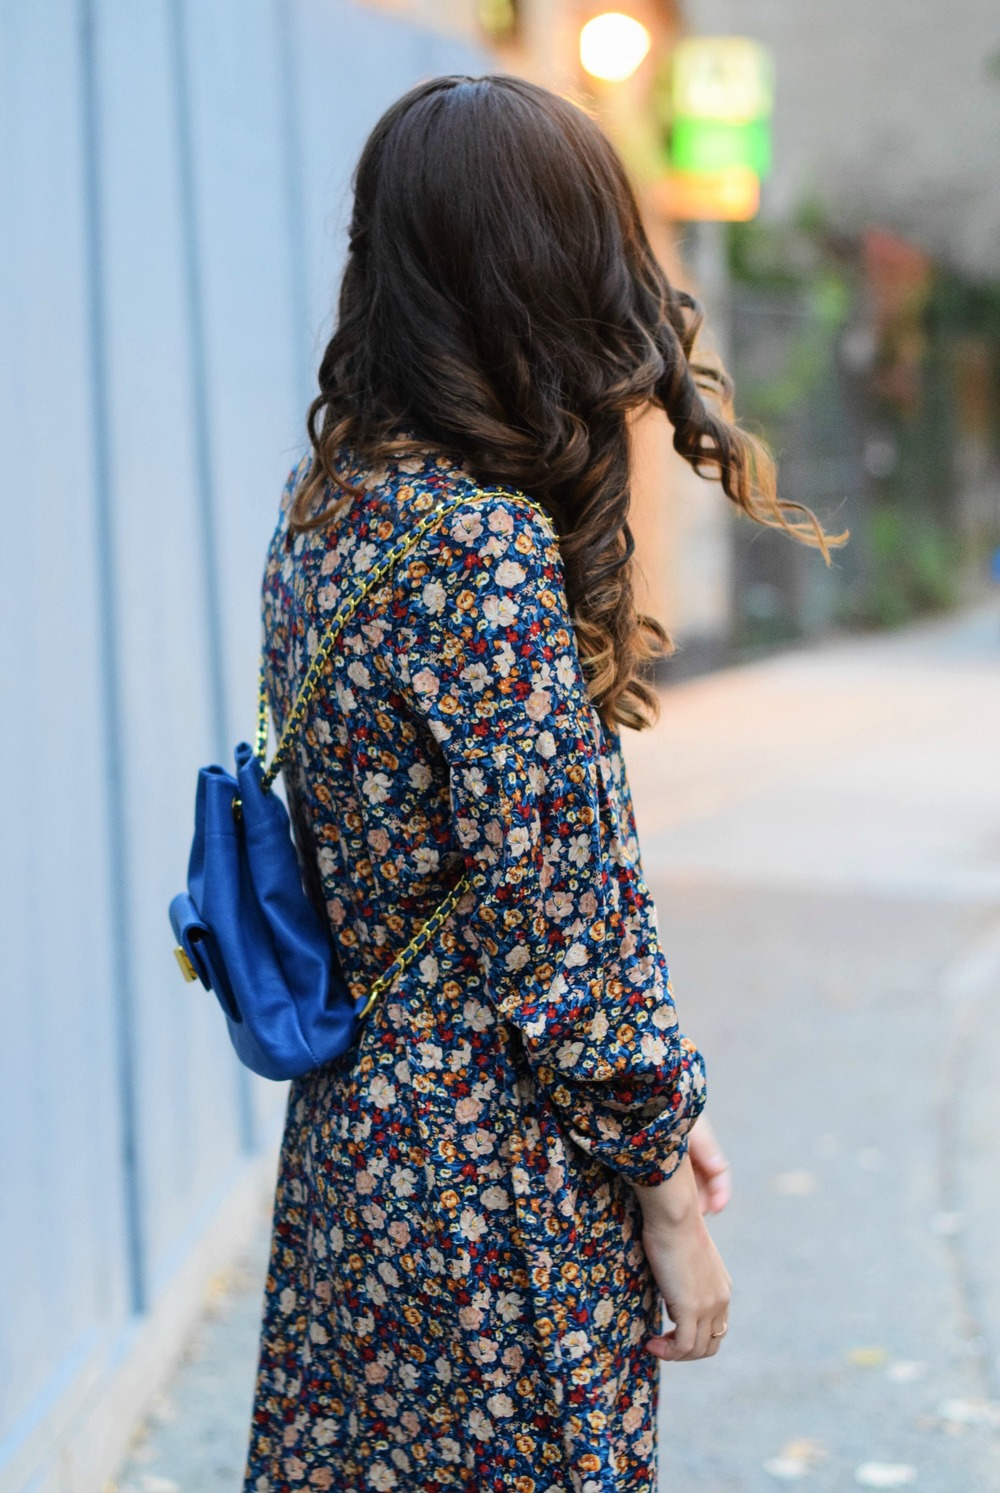 Floral Dress Blue Leather Backpack Louboutins & Love Fashion Blog Esther Santer NYC Street Style Blogger Black Tights Fringe Preta Ivanka Trump Booties Hair Girl Women Shopping Inspo Inspiration Model Photoshoot Trendy New York City Winter Outfit OOTD.jpg